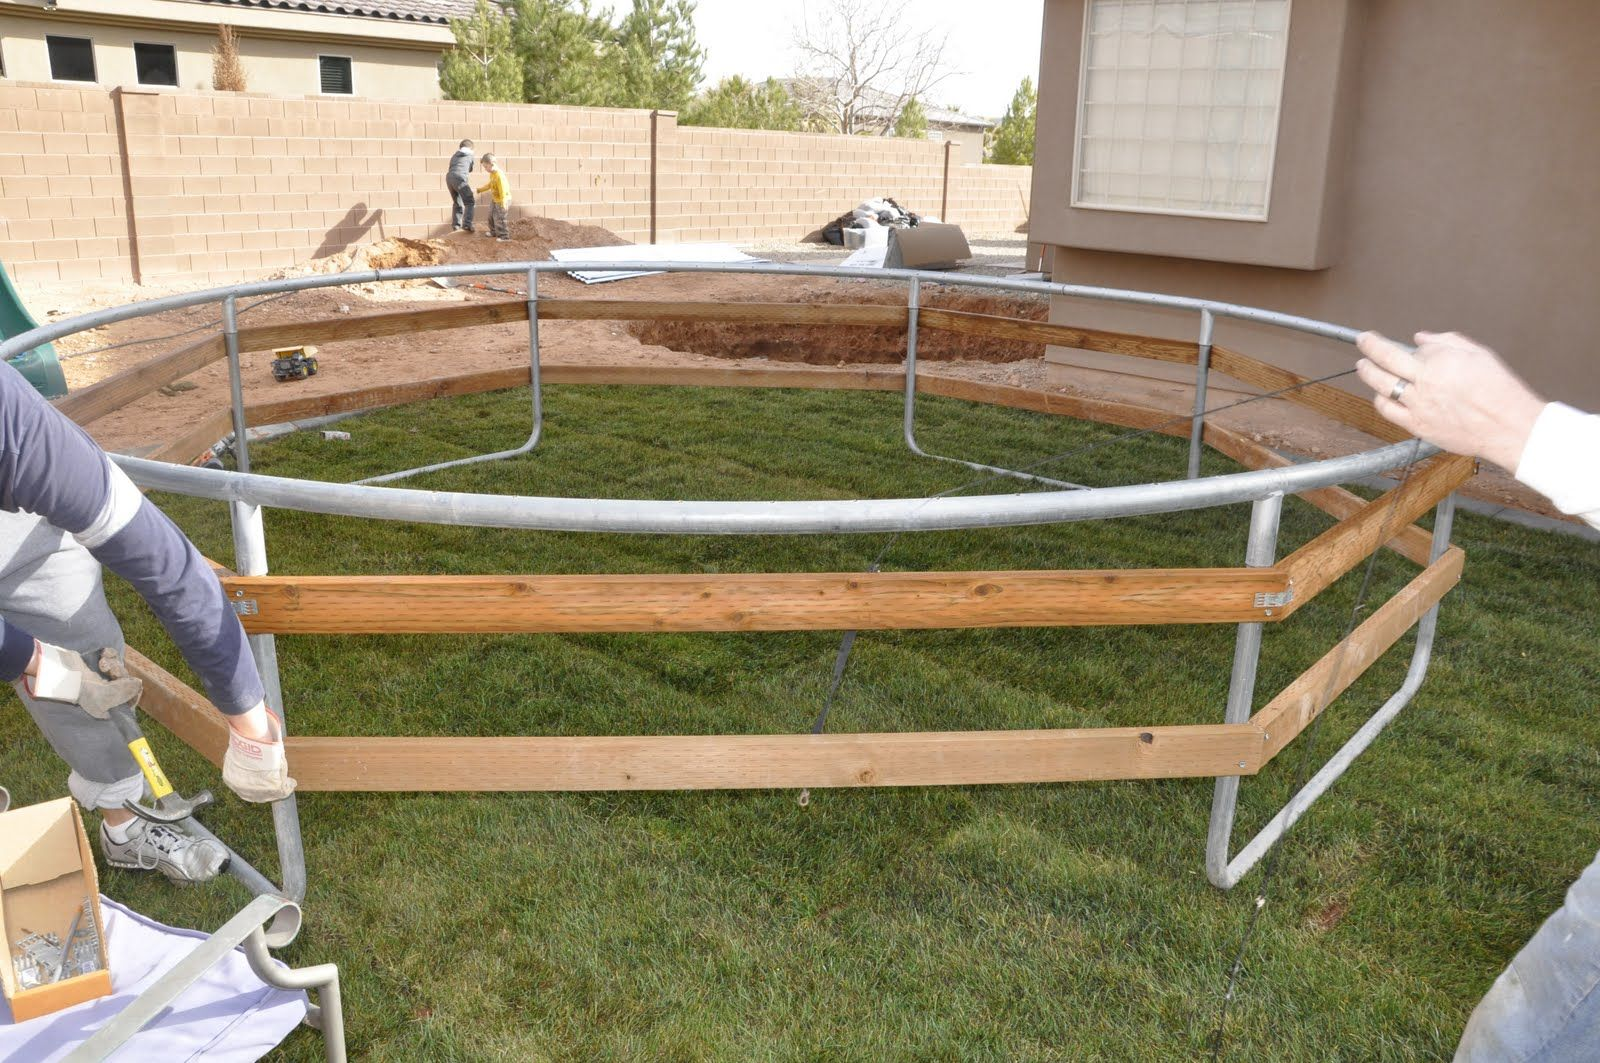 DIY Inground Trampoline Instructions